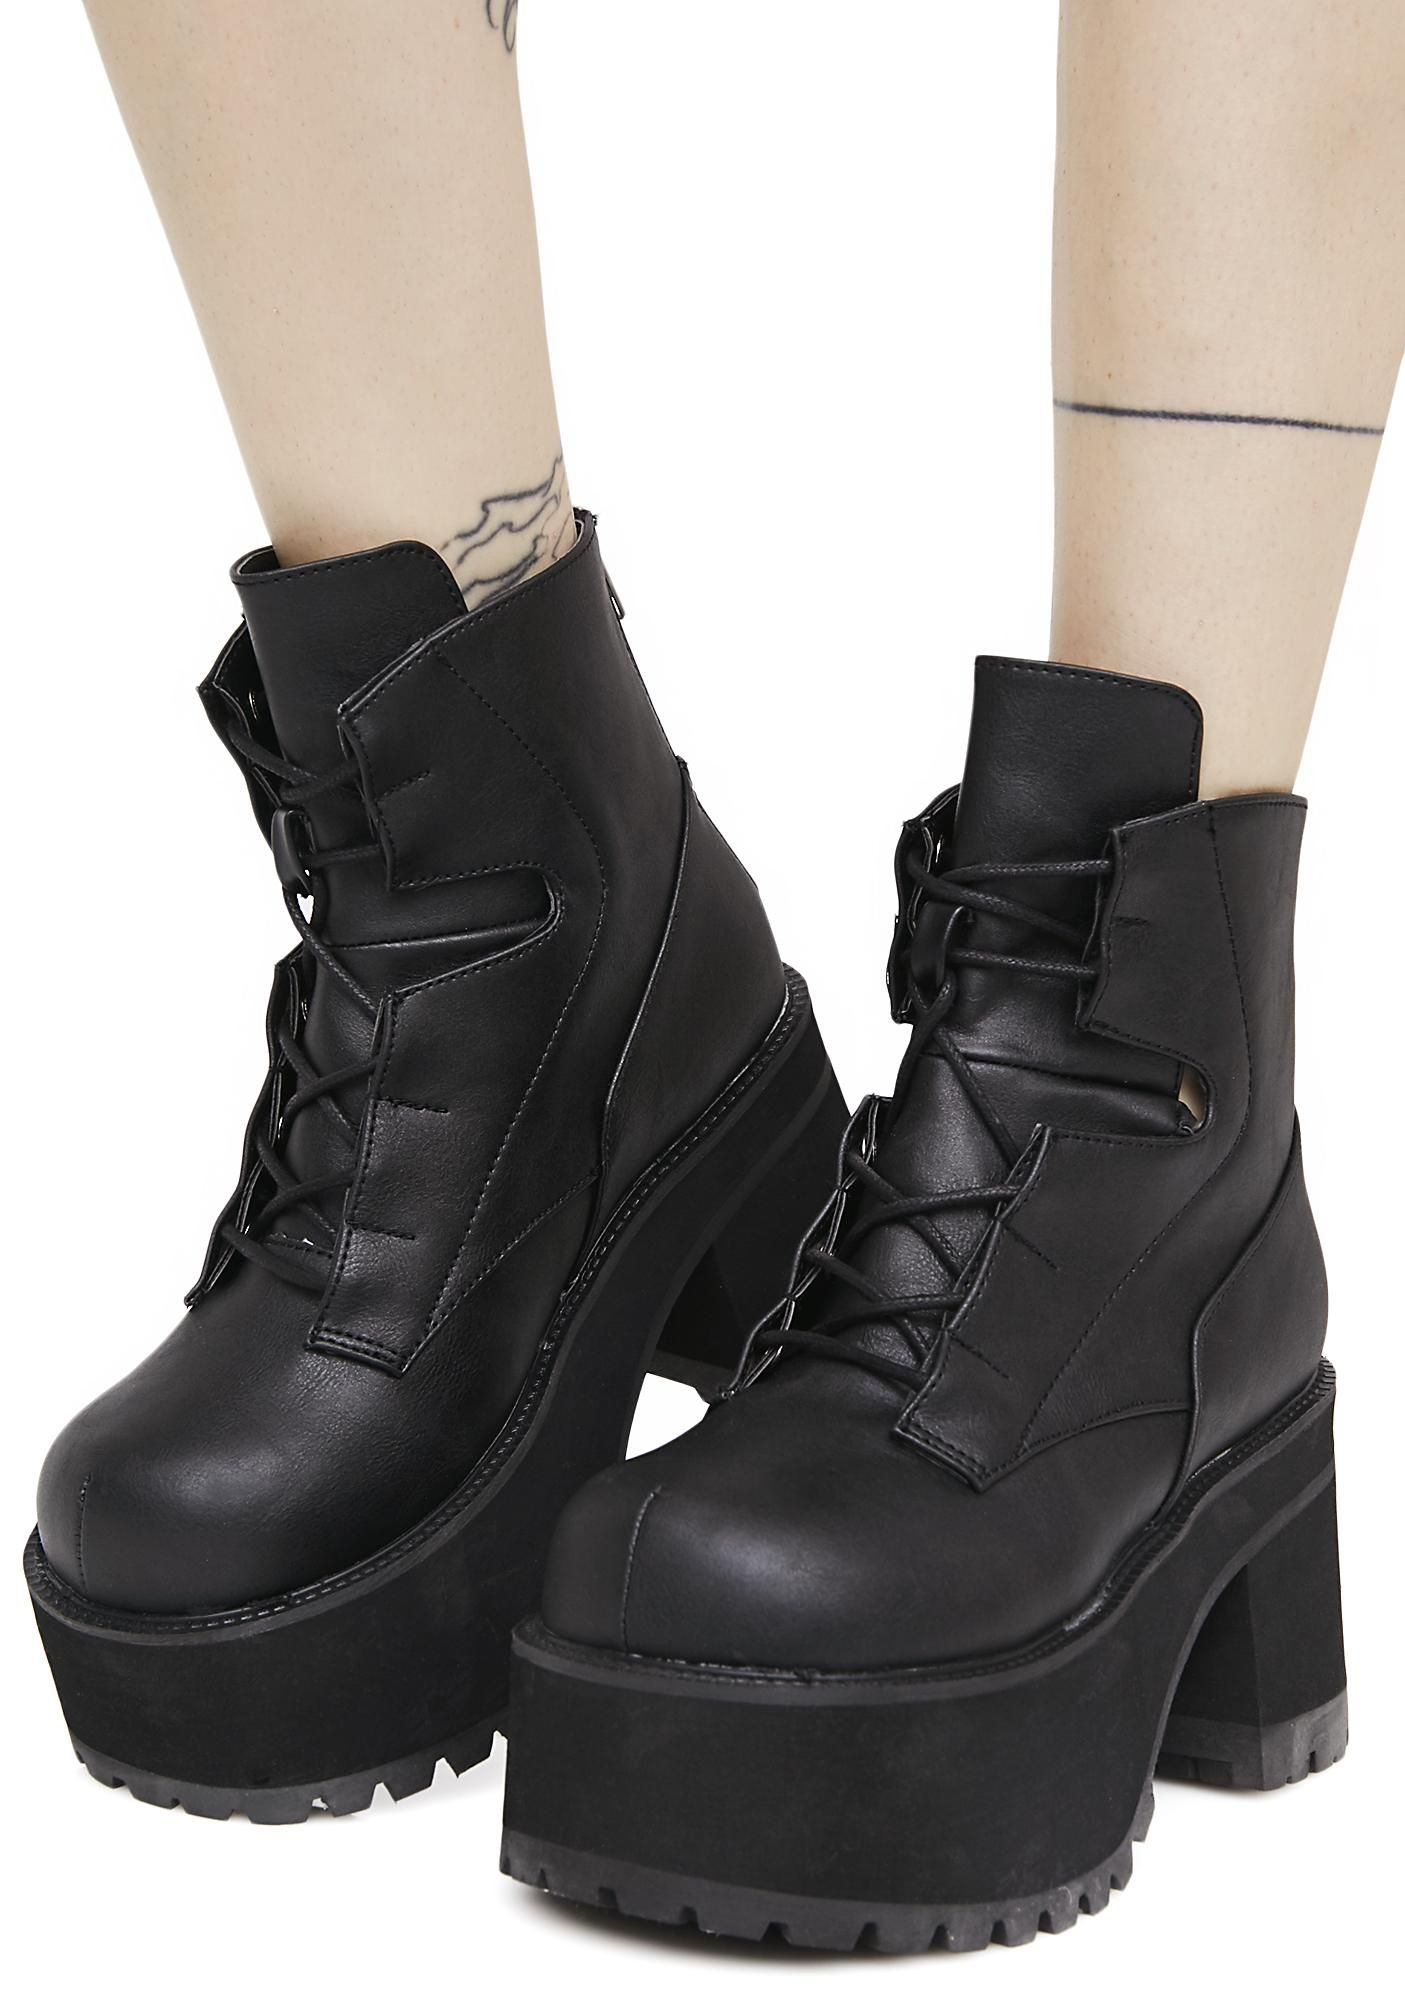 705b4b2d45cf38 Demonia Earthshatter Platform Boots are ready to break this thing wide  open